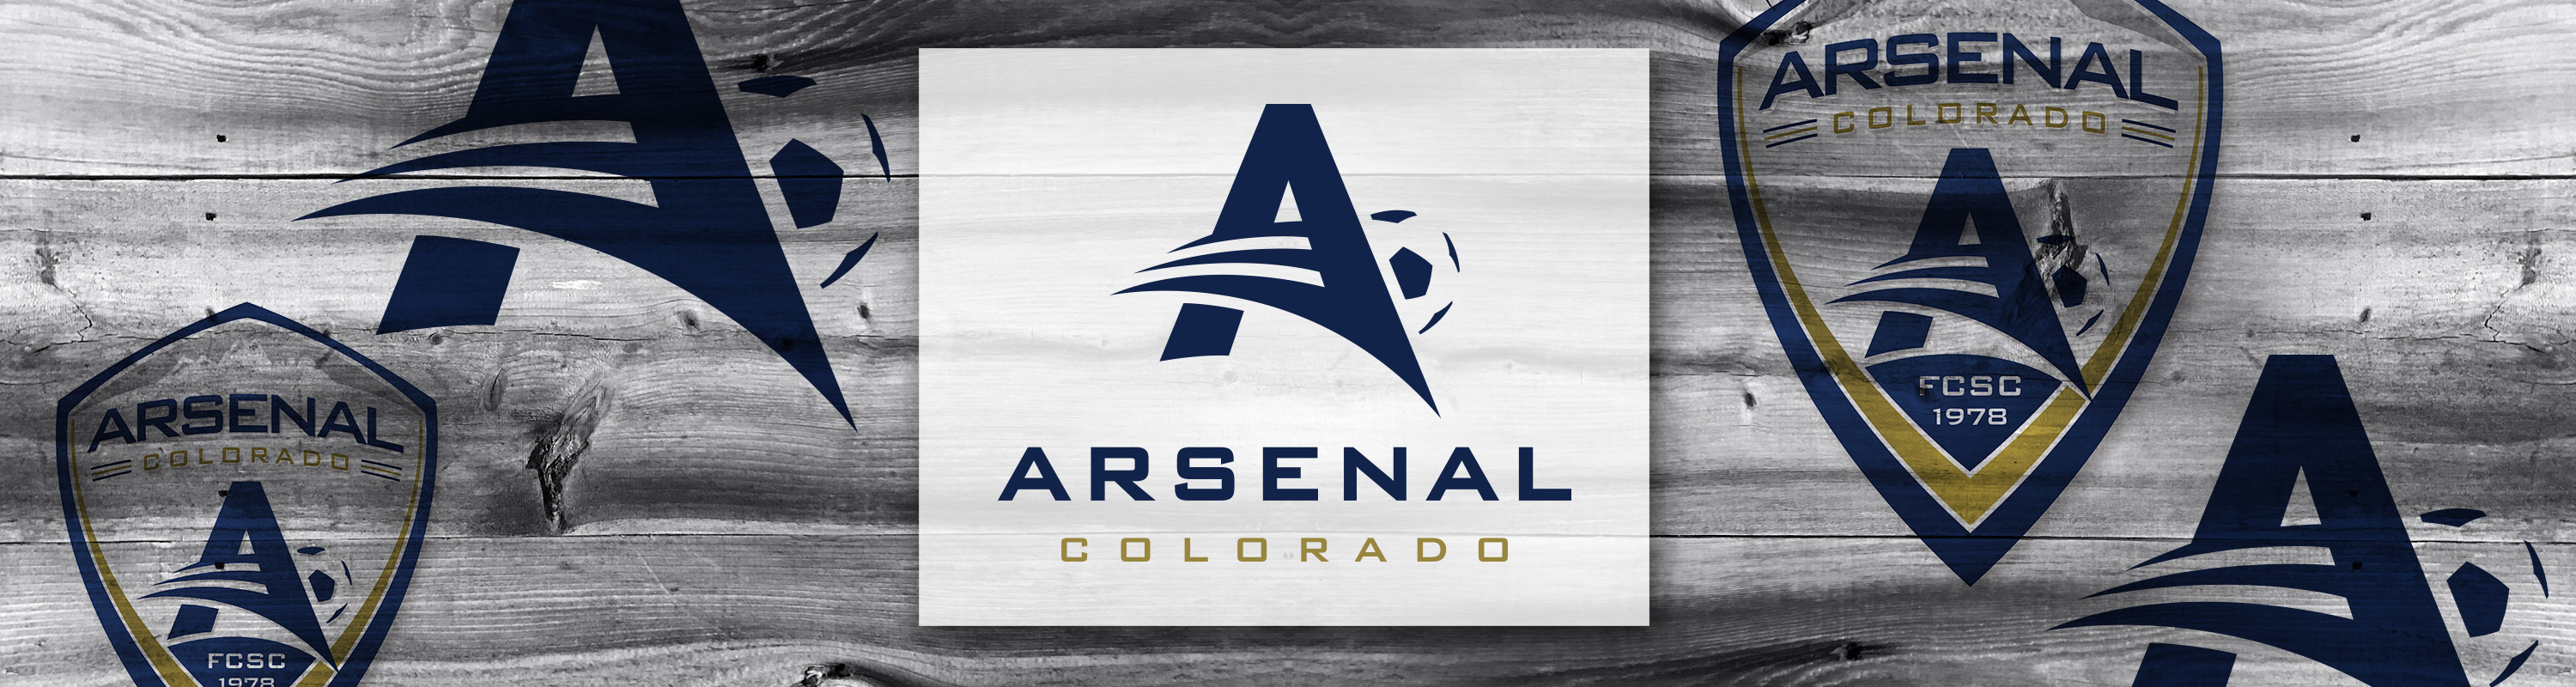 Fort Collins Logo Design: Arsenal Colorado